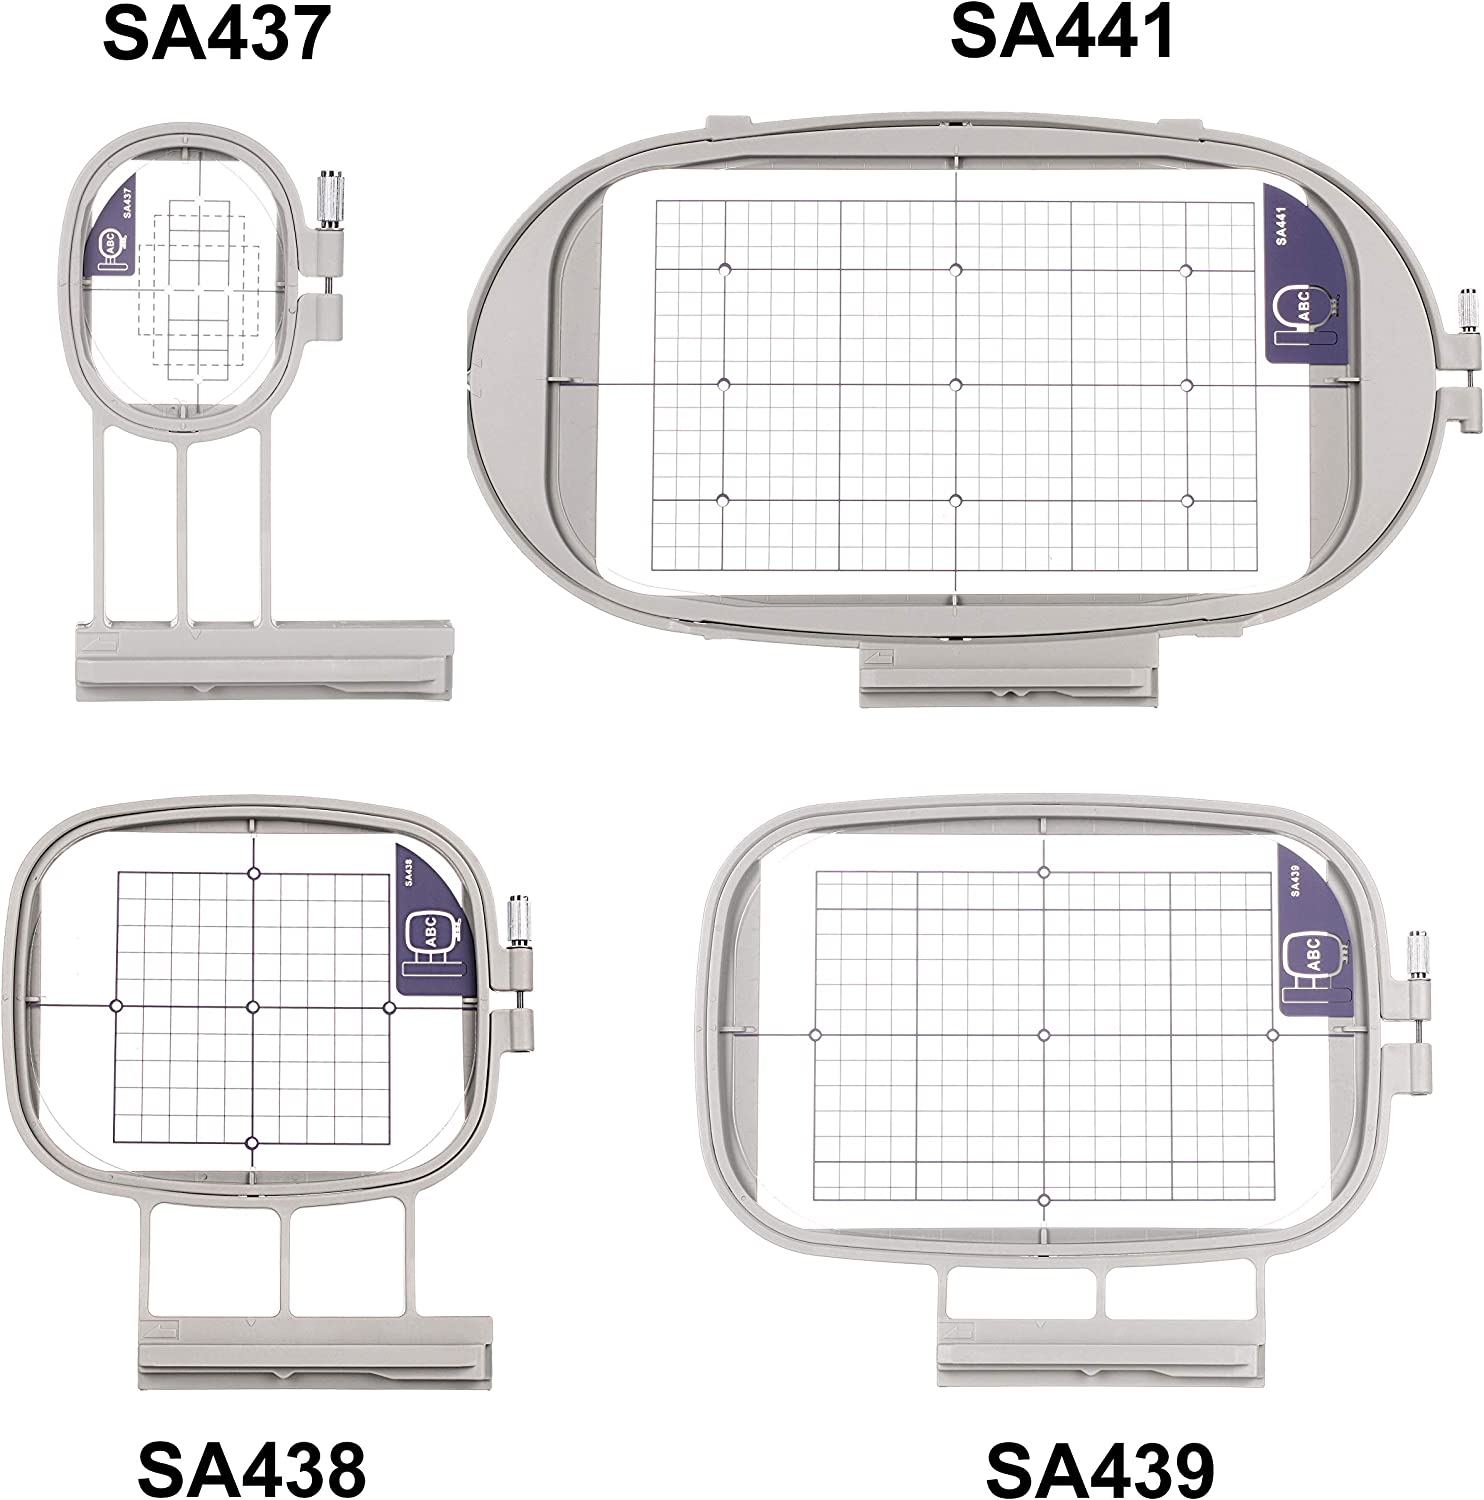 4in1-B Set SewTech Embroidery Hoops for Brother Innovis NQ1600E NQ1400E NQ3600D Dream Machine 2 VE2200 4000D 1500D V7 V5 VM5200 Babylock Embroidery Machine Hoop